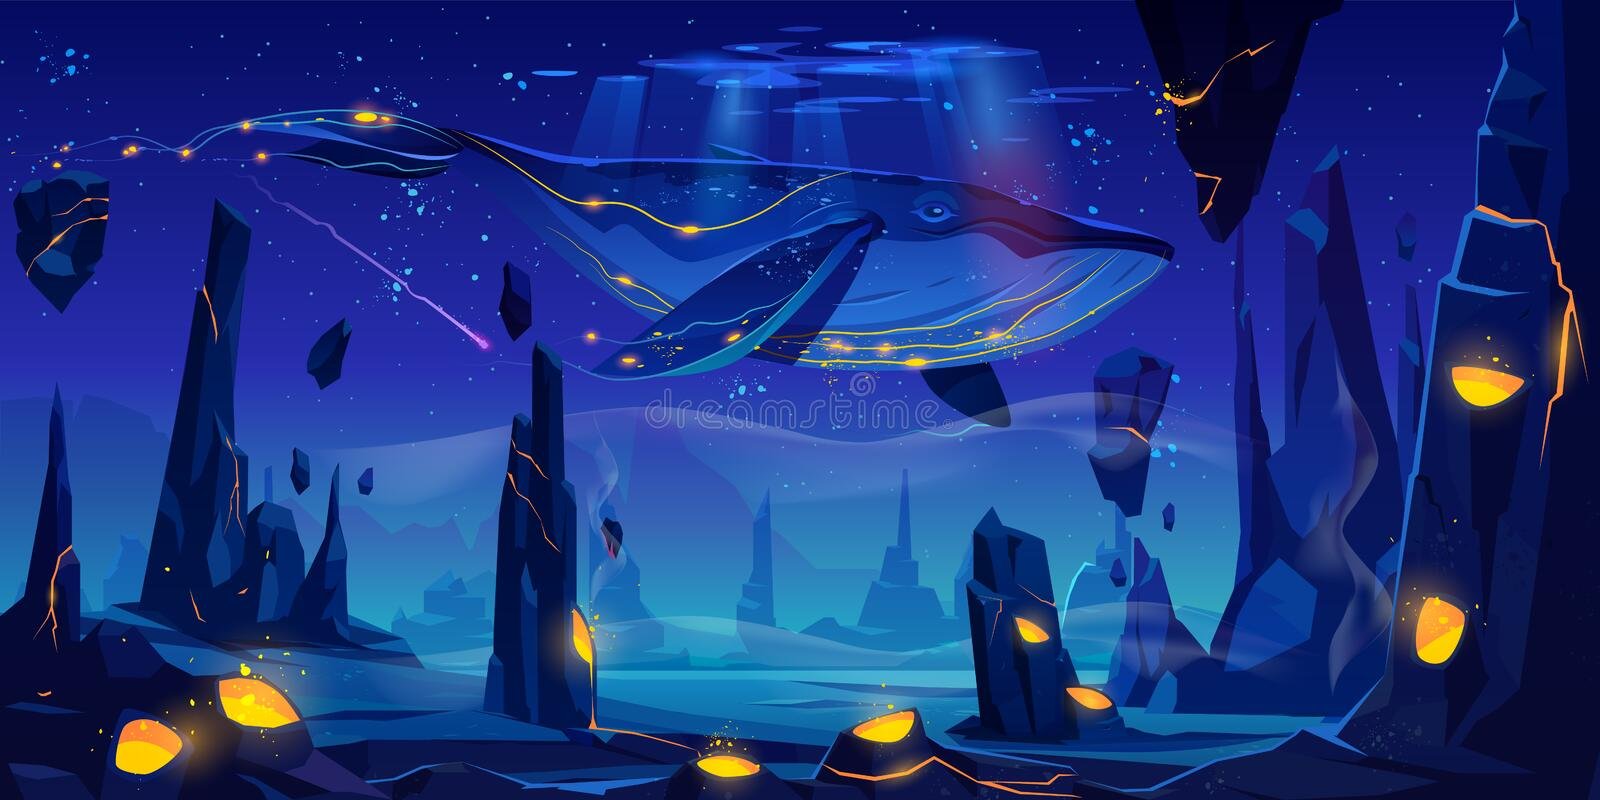 Fantasy dream, space fairy tale with huge whale royalty free illustration